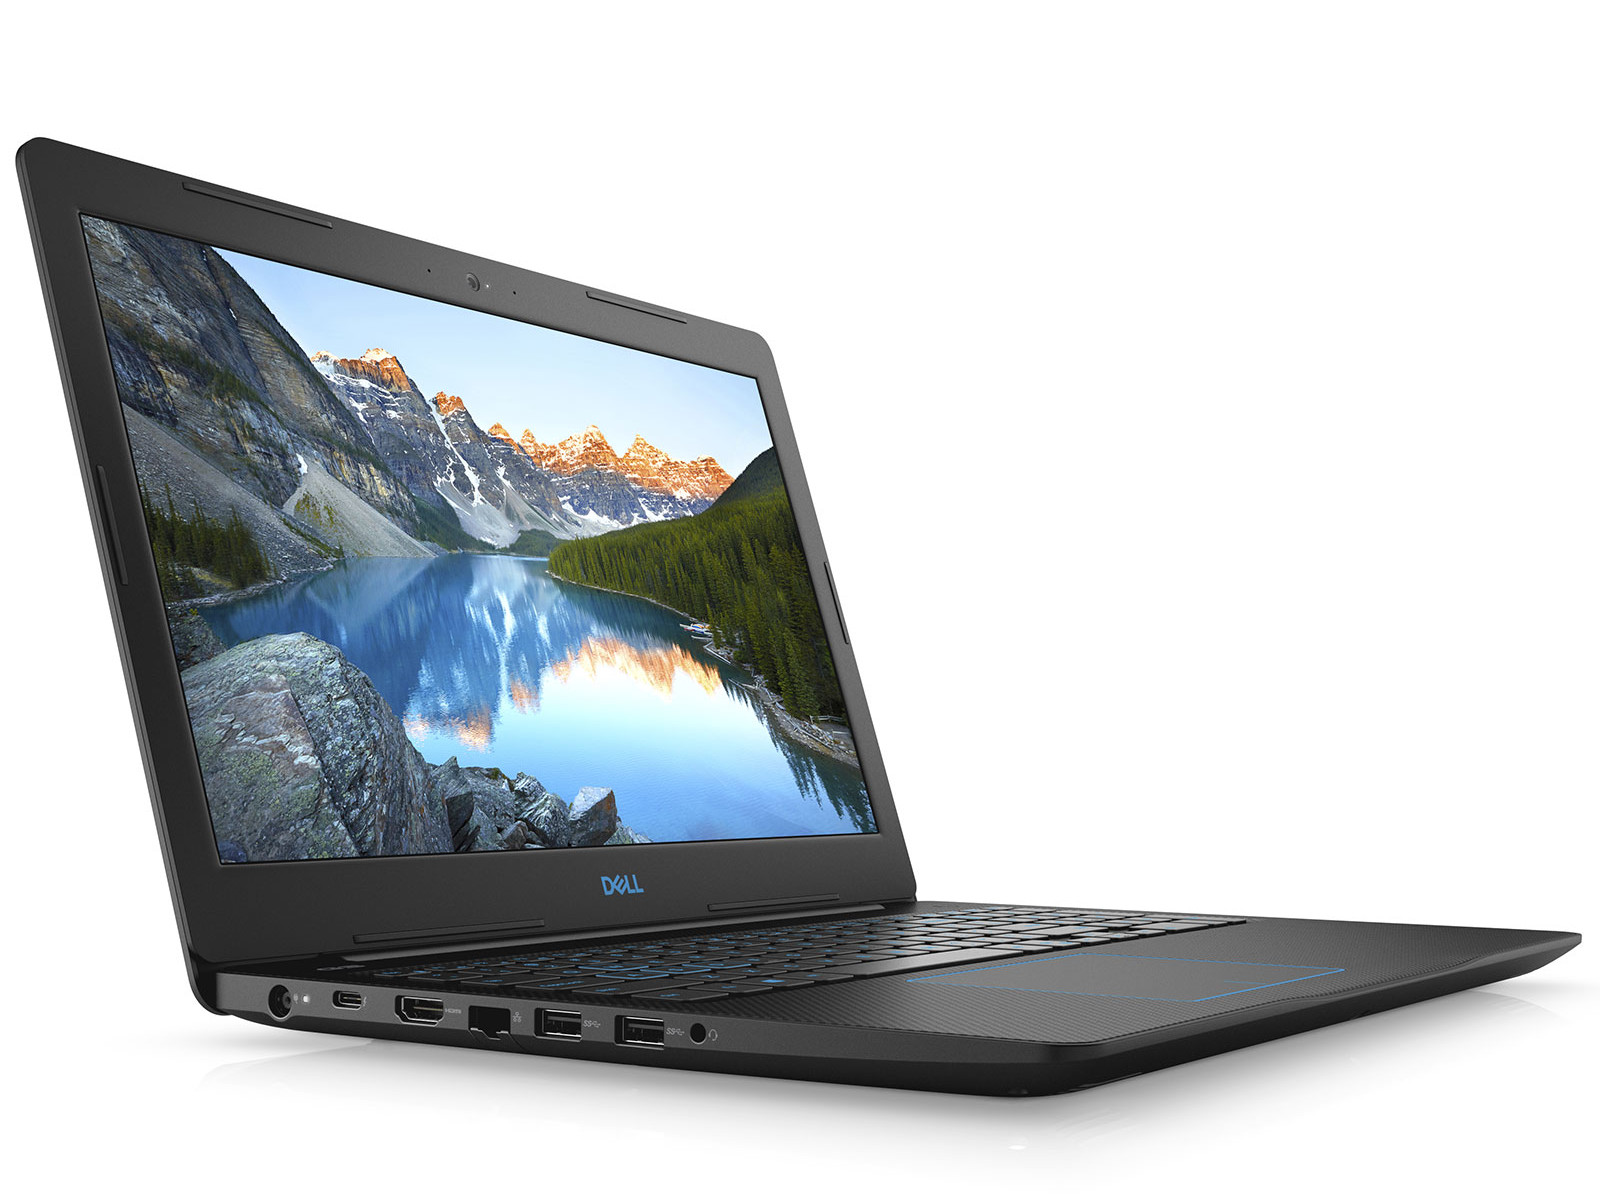 Le PC portable Gamer Dell G3 (GTX 1060) à 1030 €